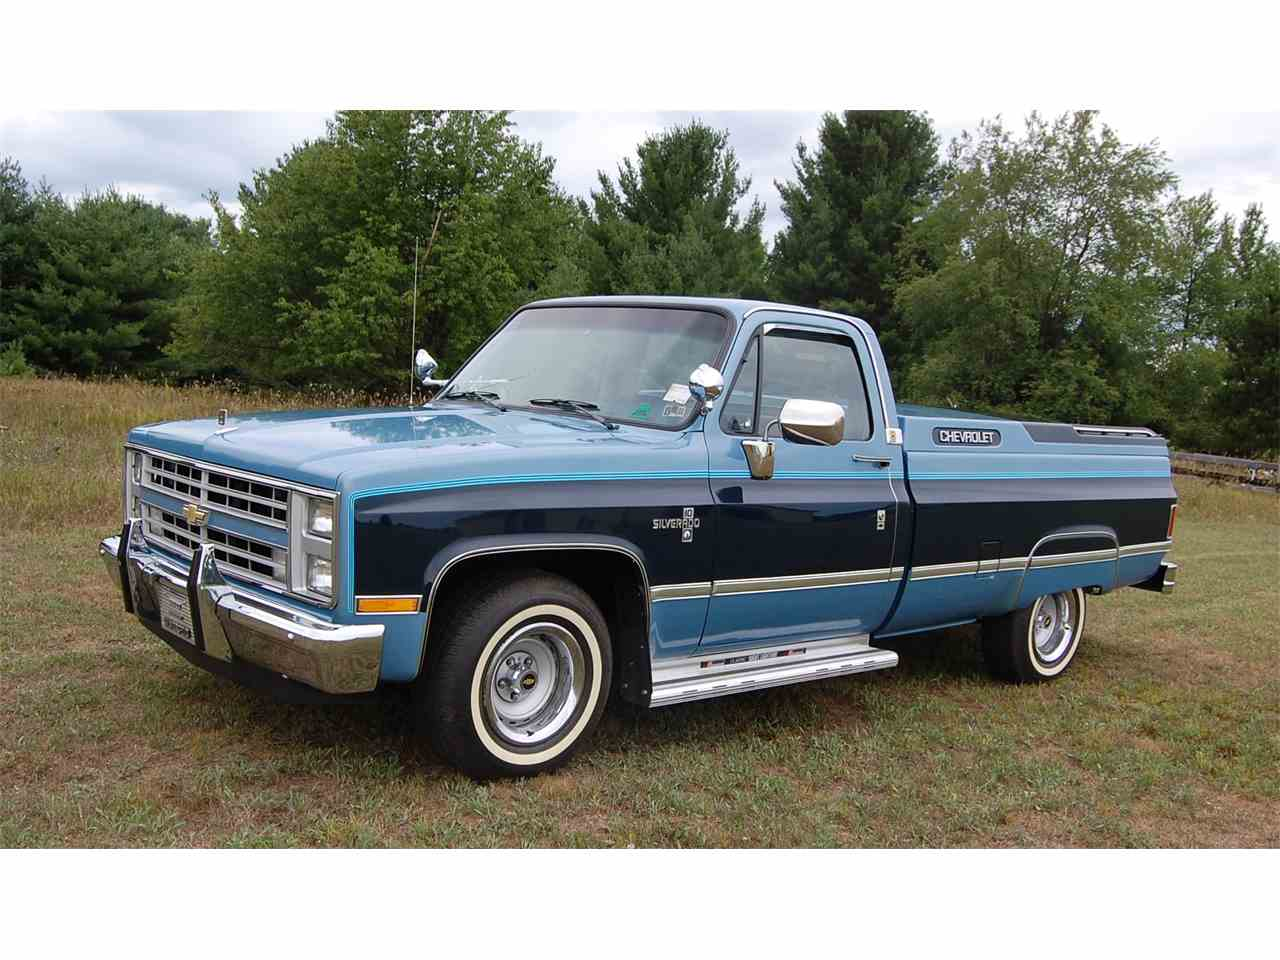 Classic Chevrolet Silverado for Sale on ClassicCars.com